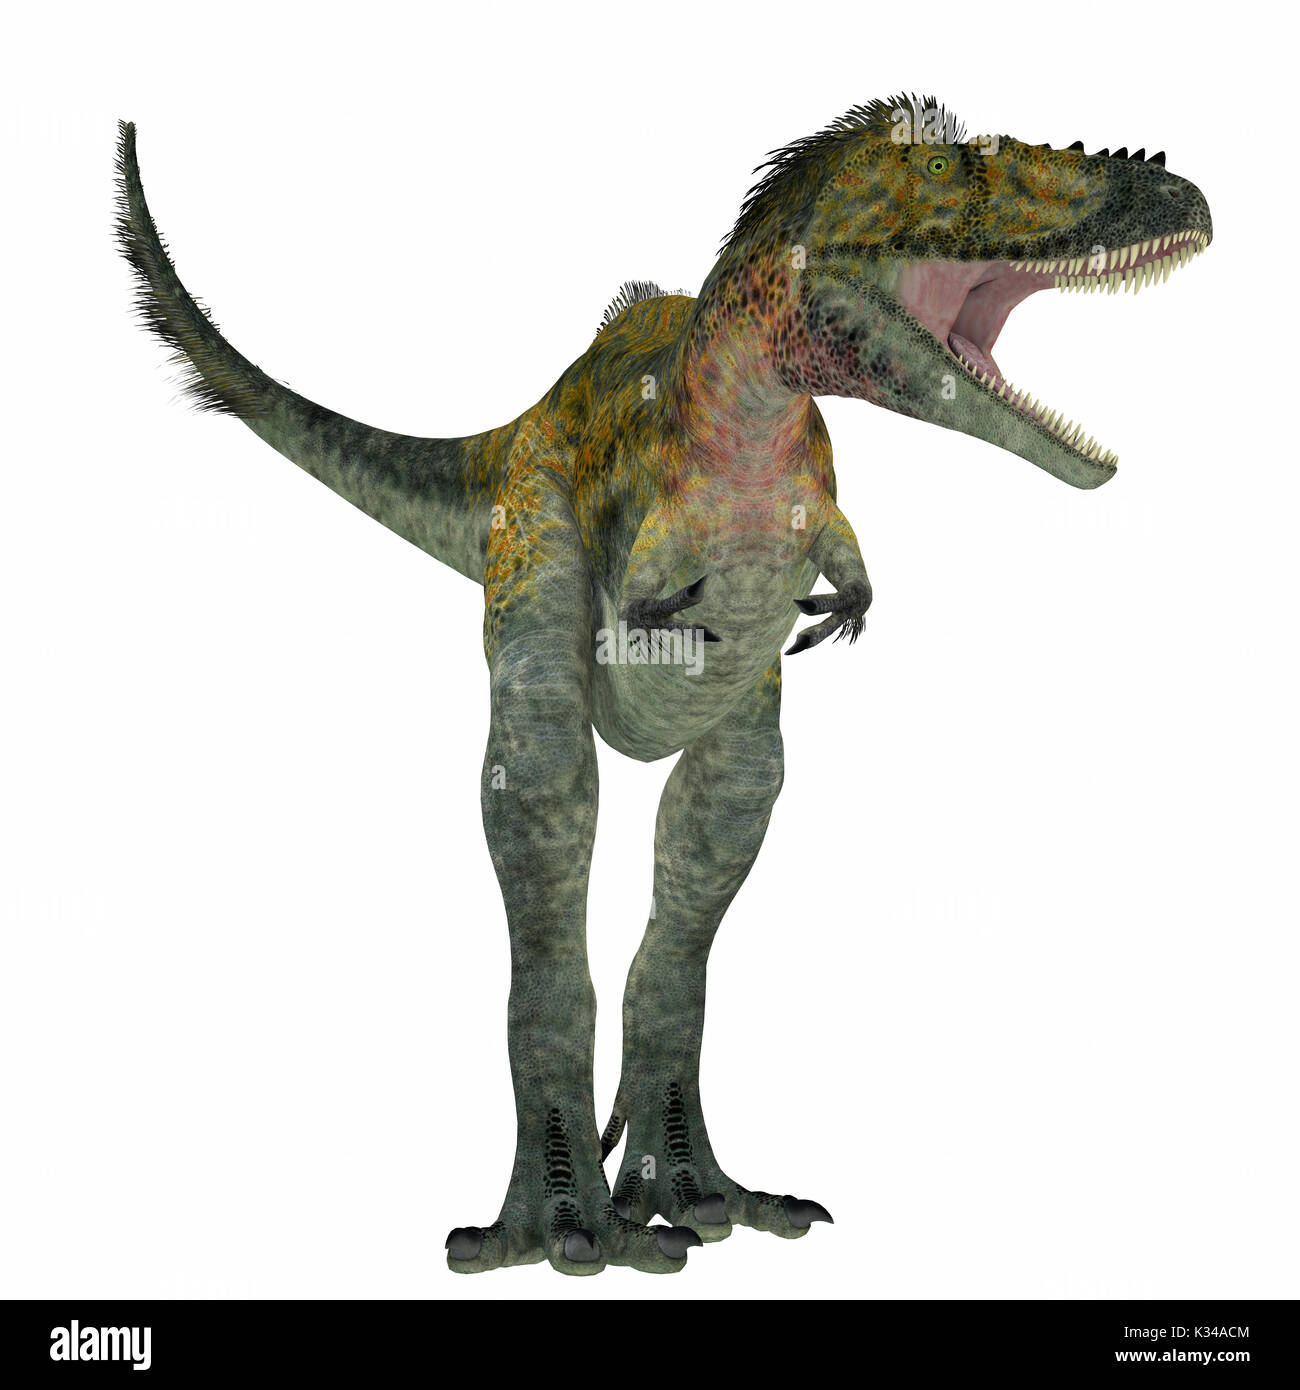 Alioramus was a carnivorous theropod dinosaur that lived in Asia in the Cretaceous Period. - Stock Image